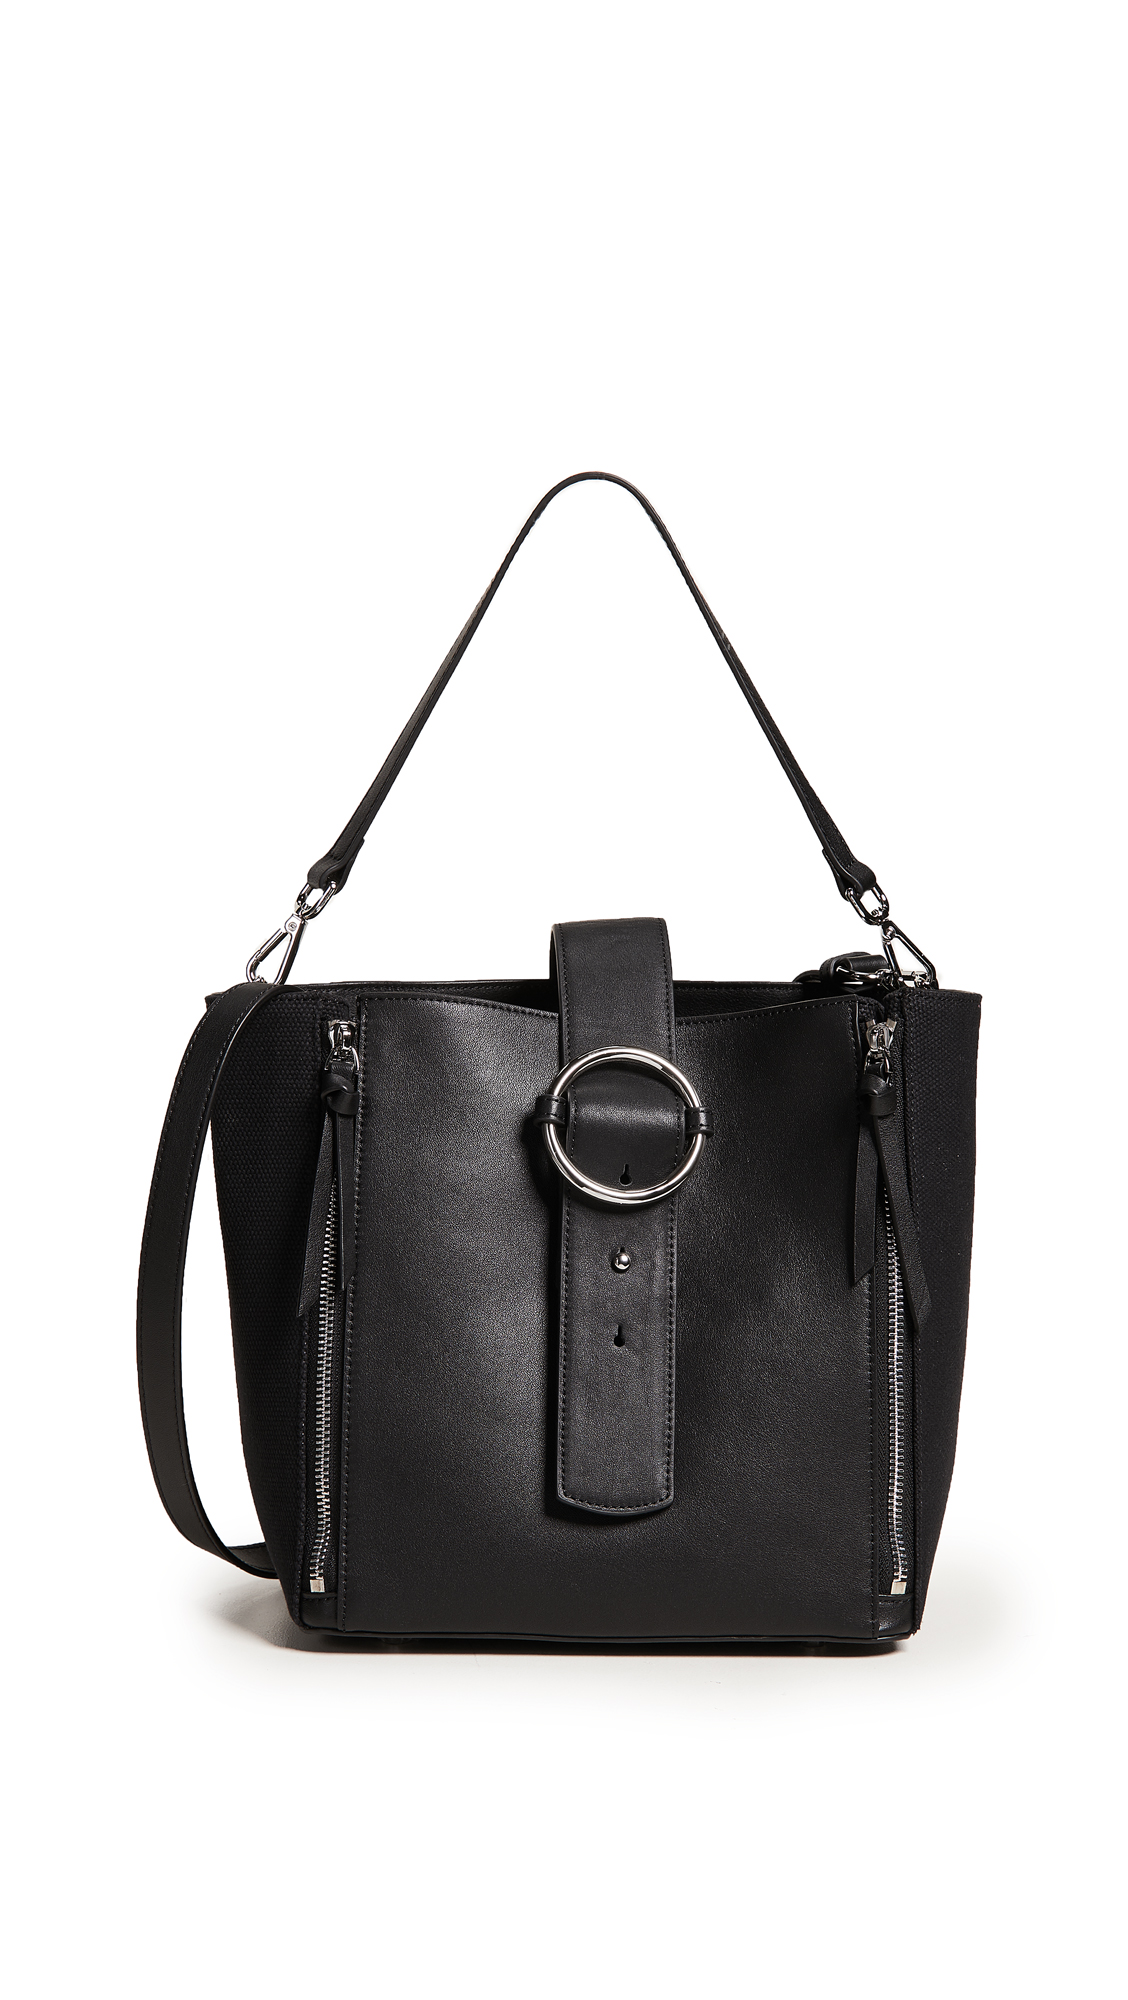 PARISA WANG ADDICTED BUCKET TOTE BAG